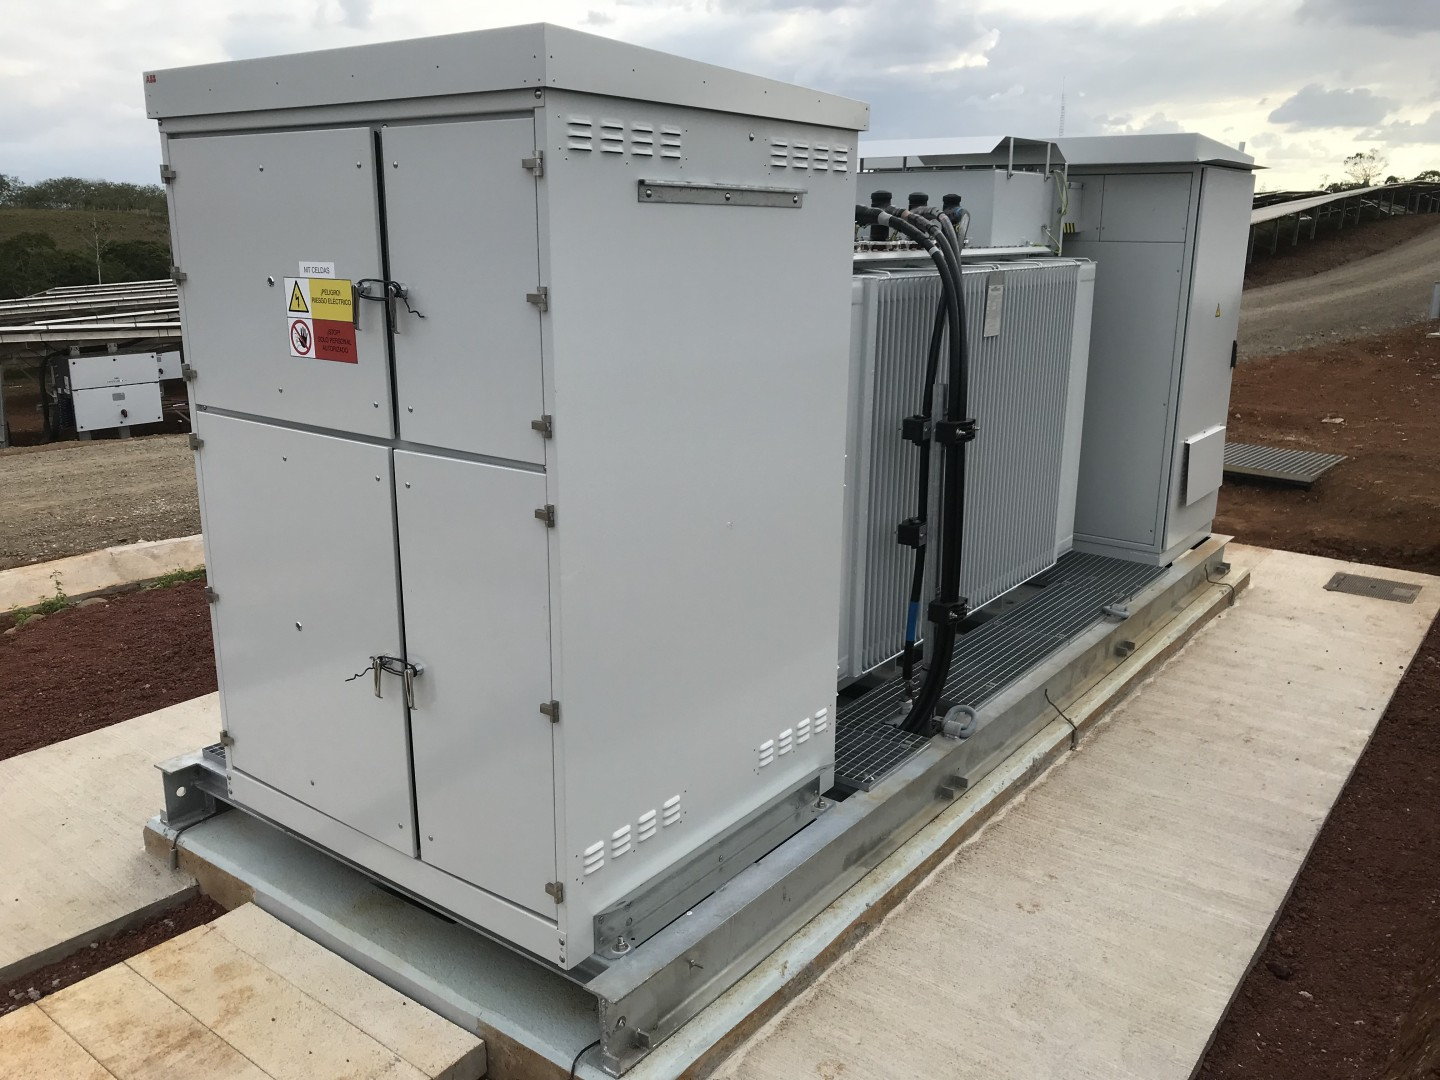 ABB's solar inverter business had been a